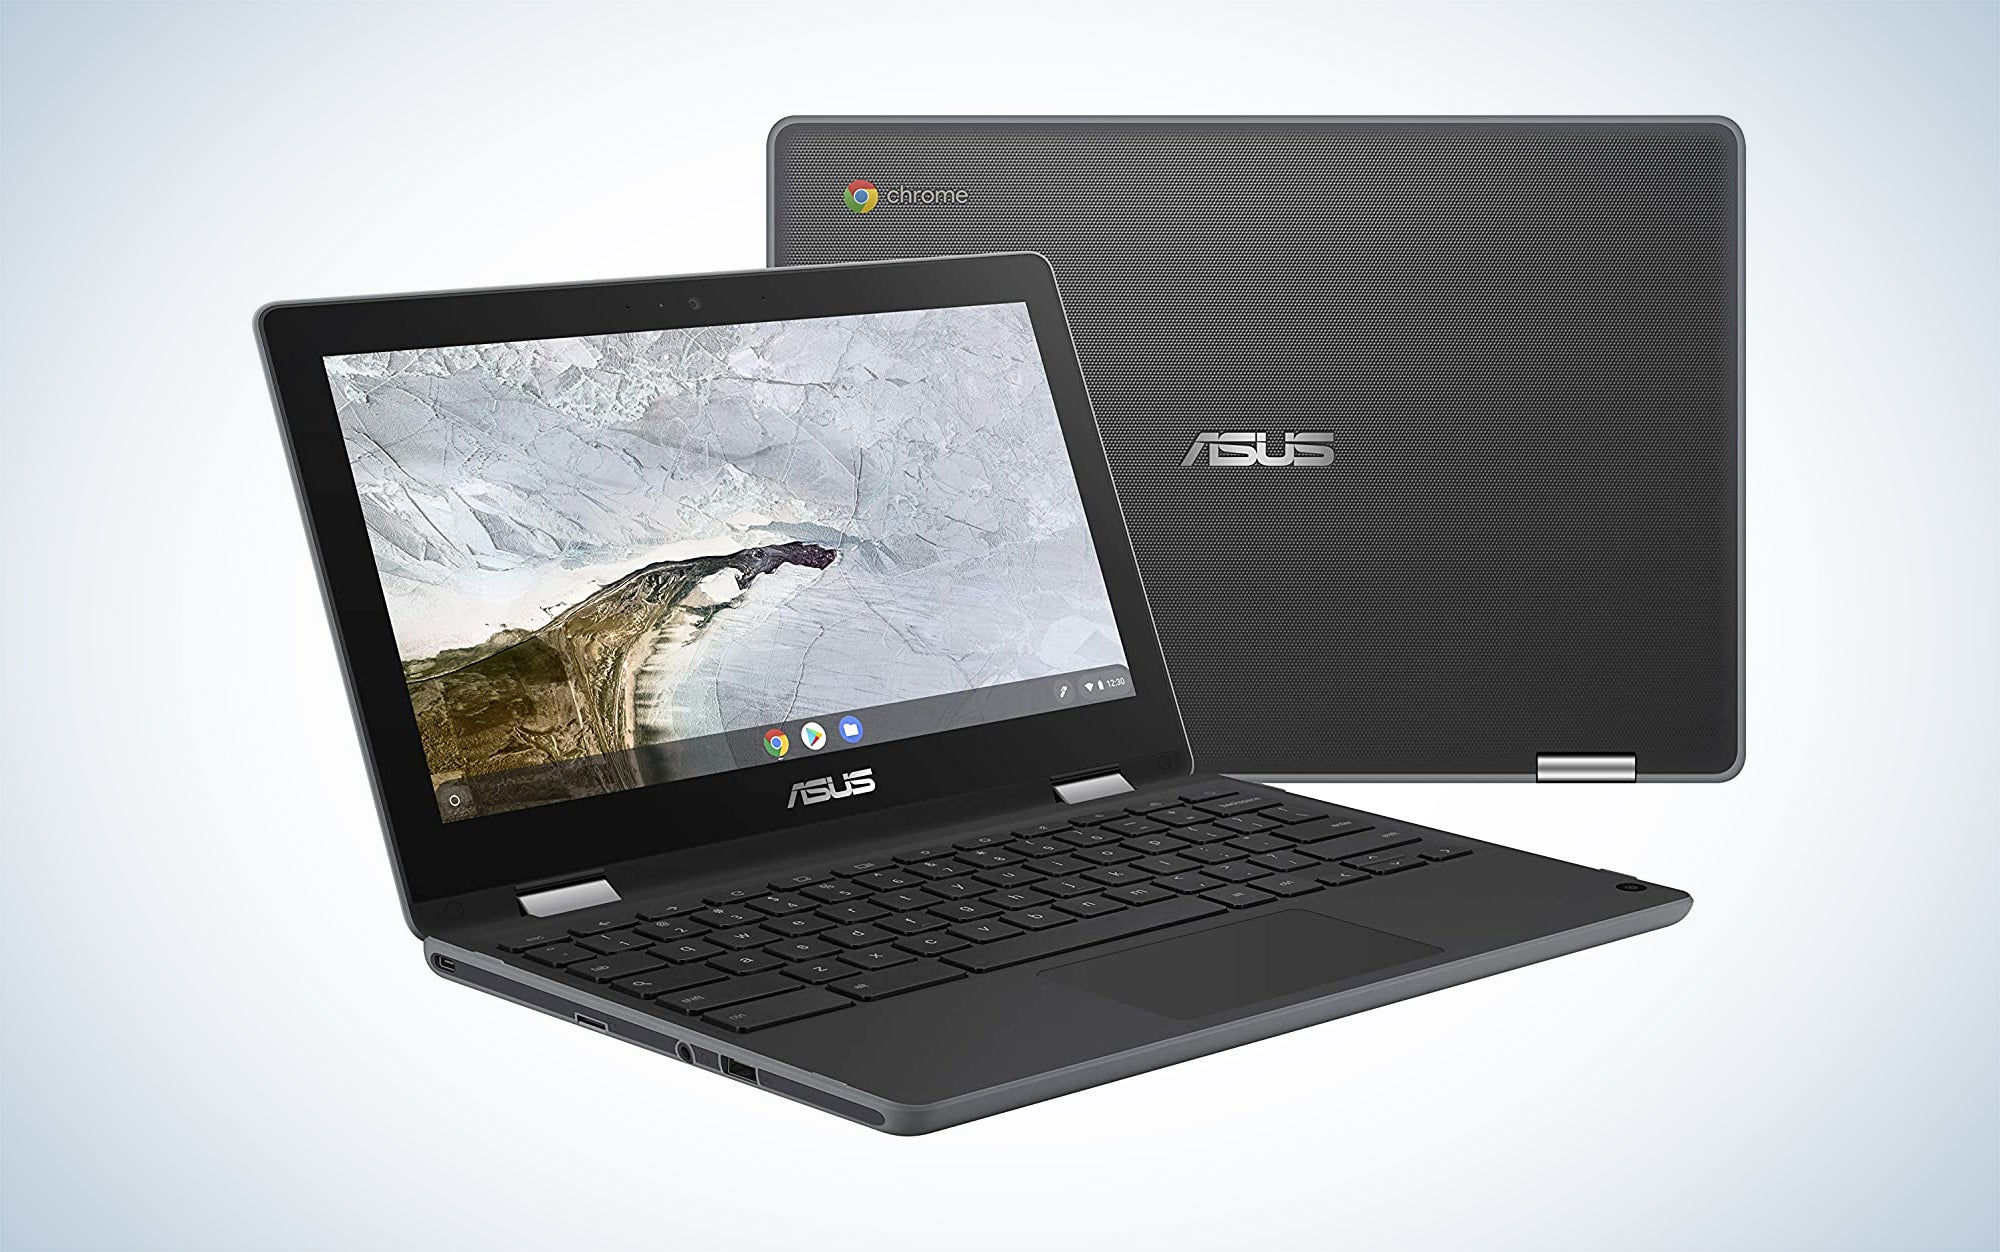 ASUS Chromebook Flip C214 is the best Chromebook for daily use.